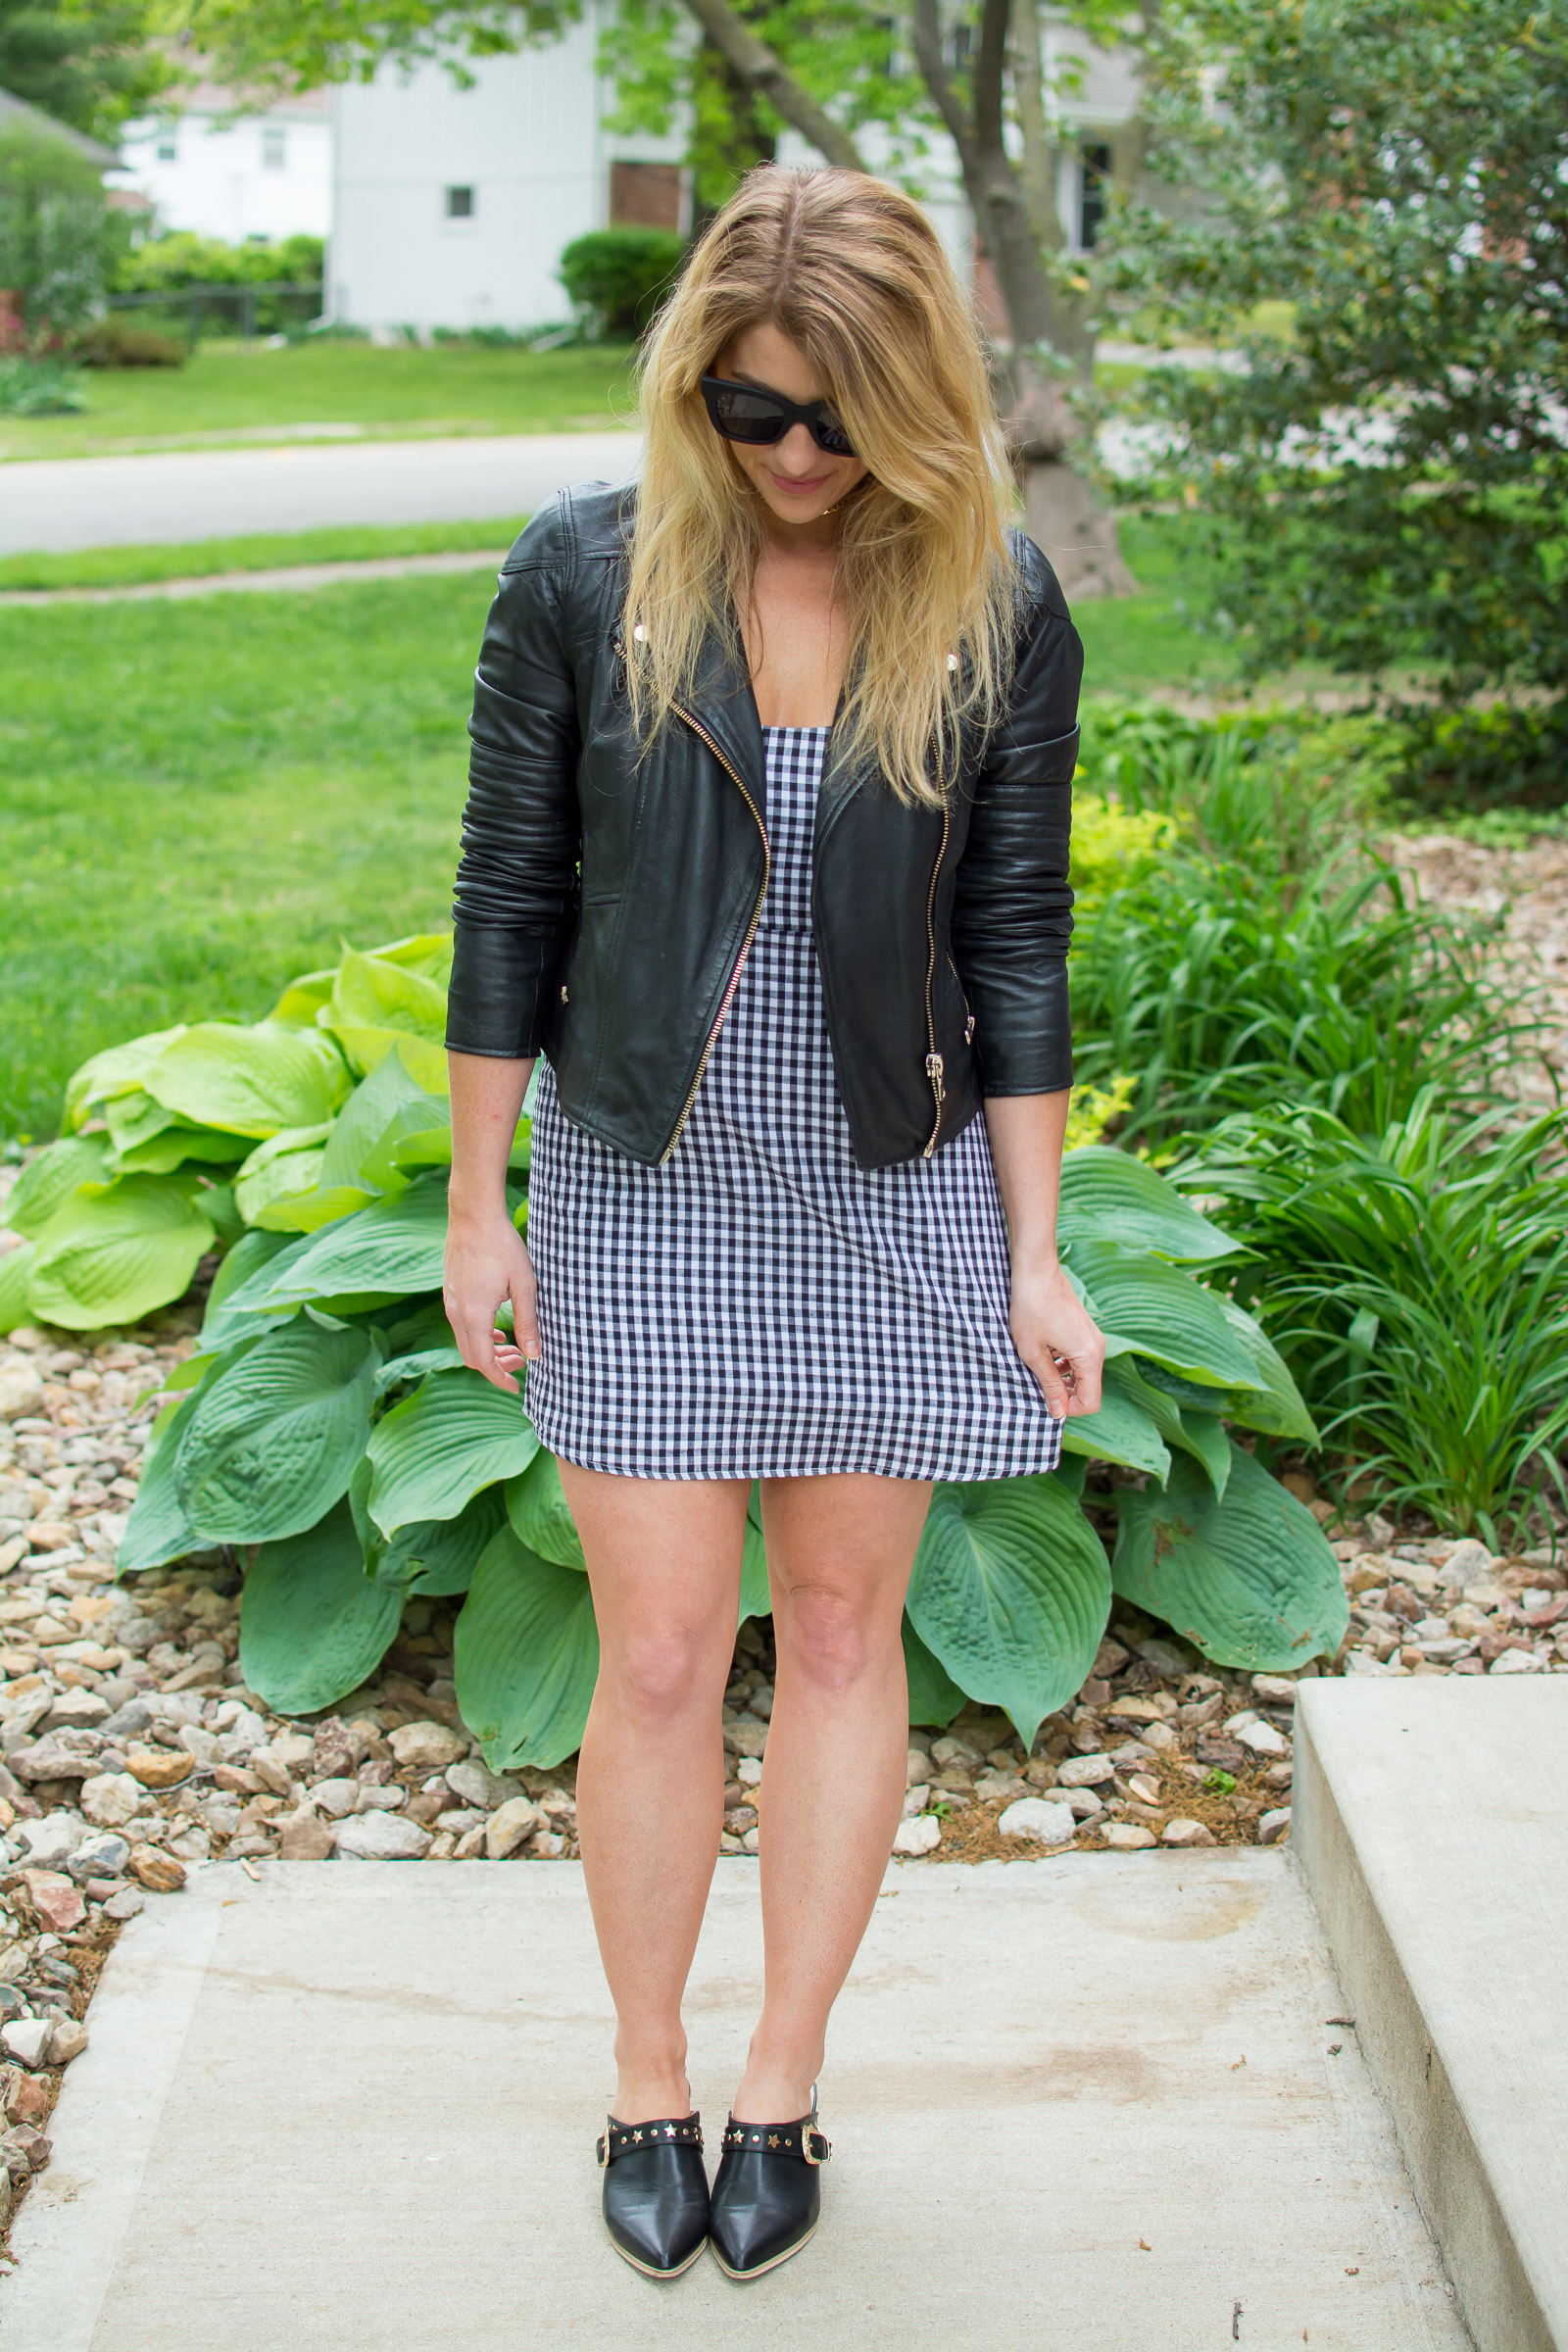 Toughening Up a Gingham Dress. | Ashley from Le Stylo Rouge